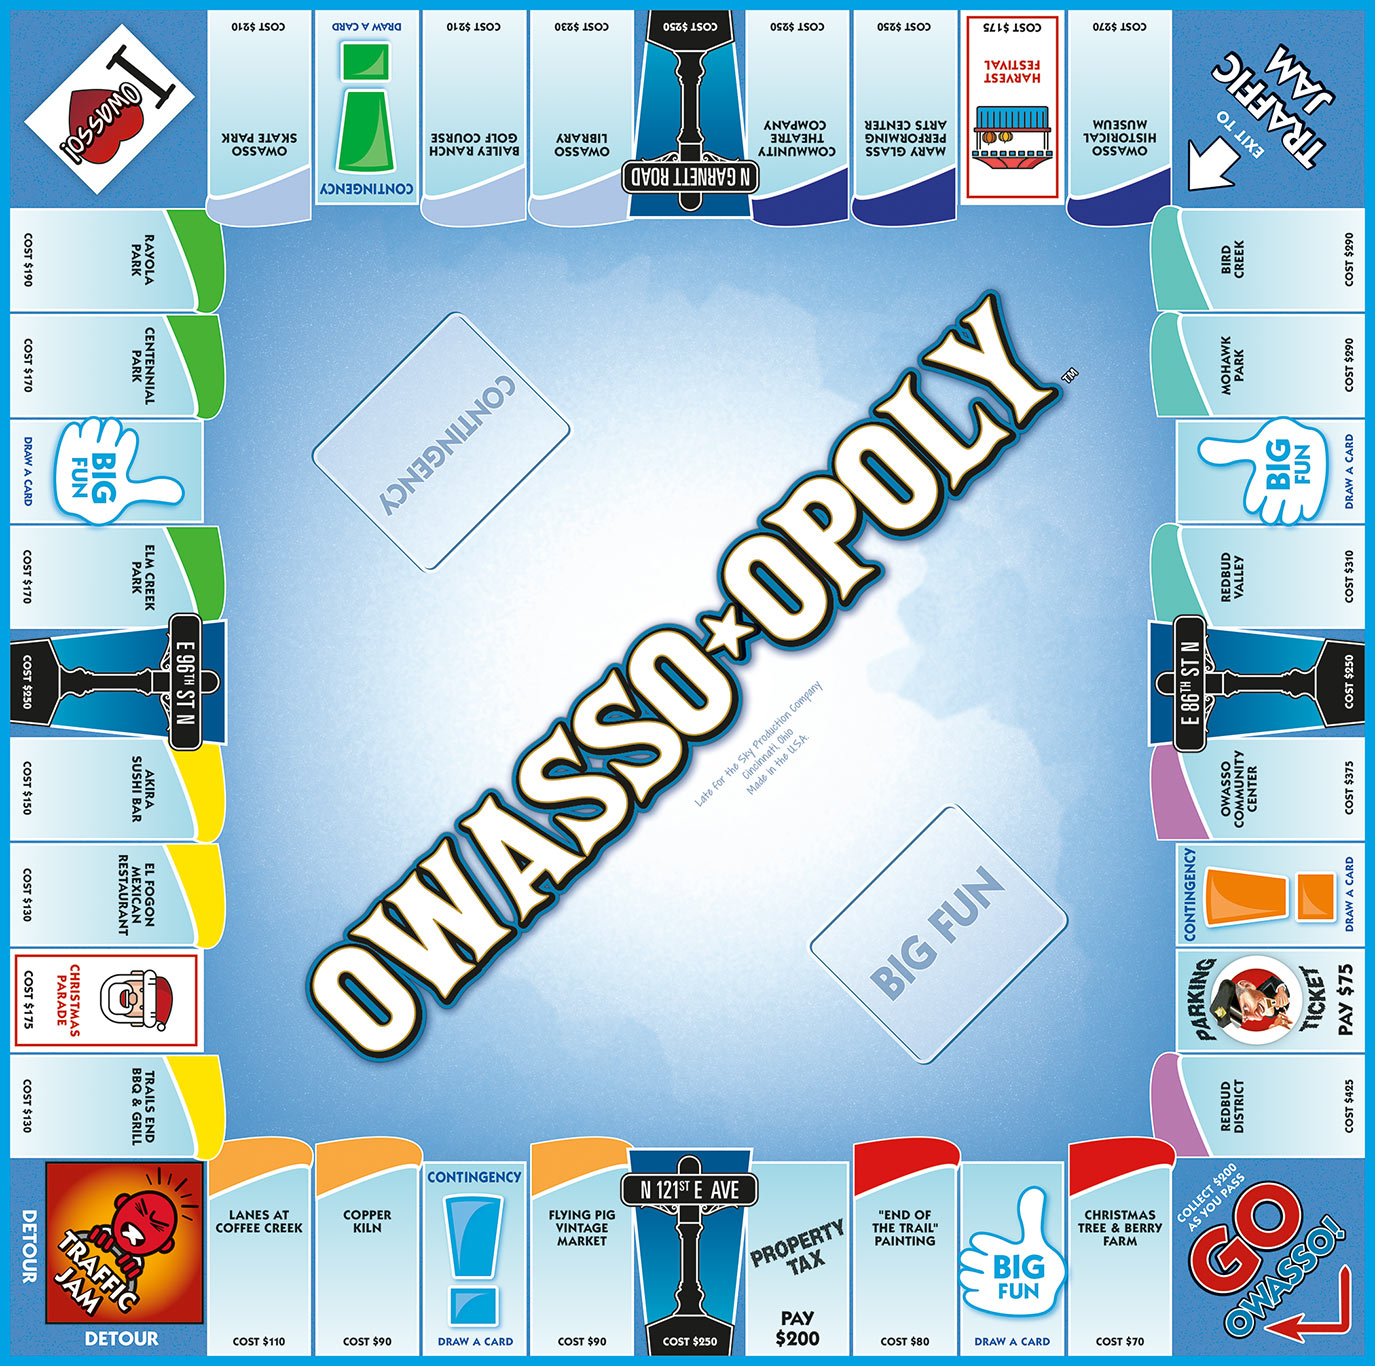 OWASSO-OPOLY Board Game